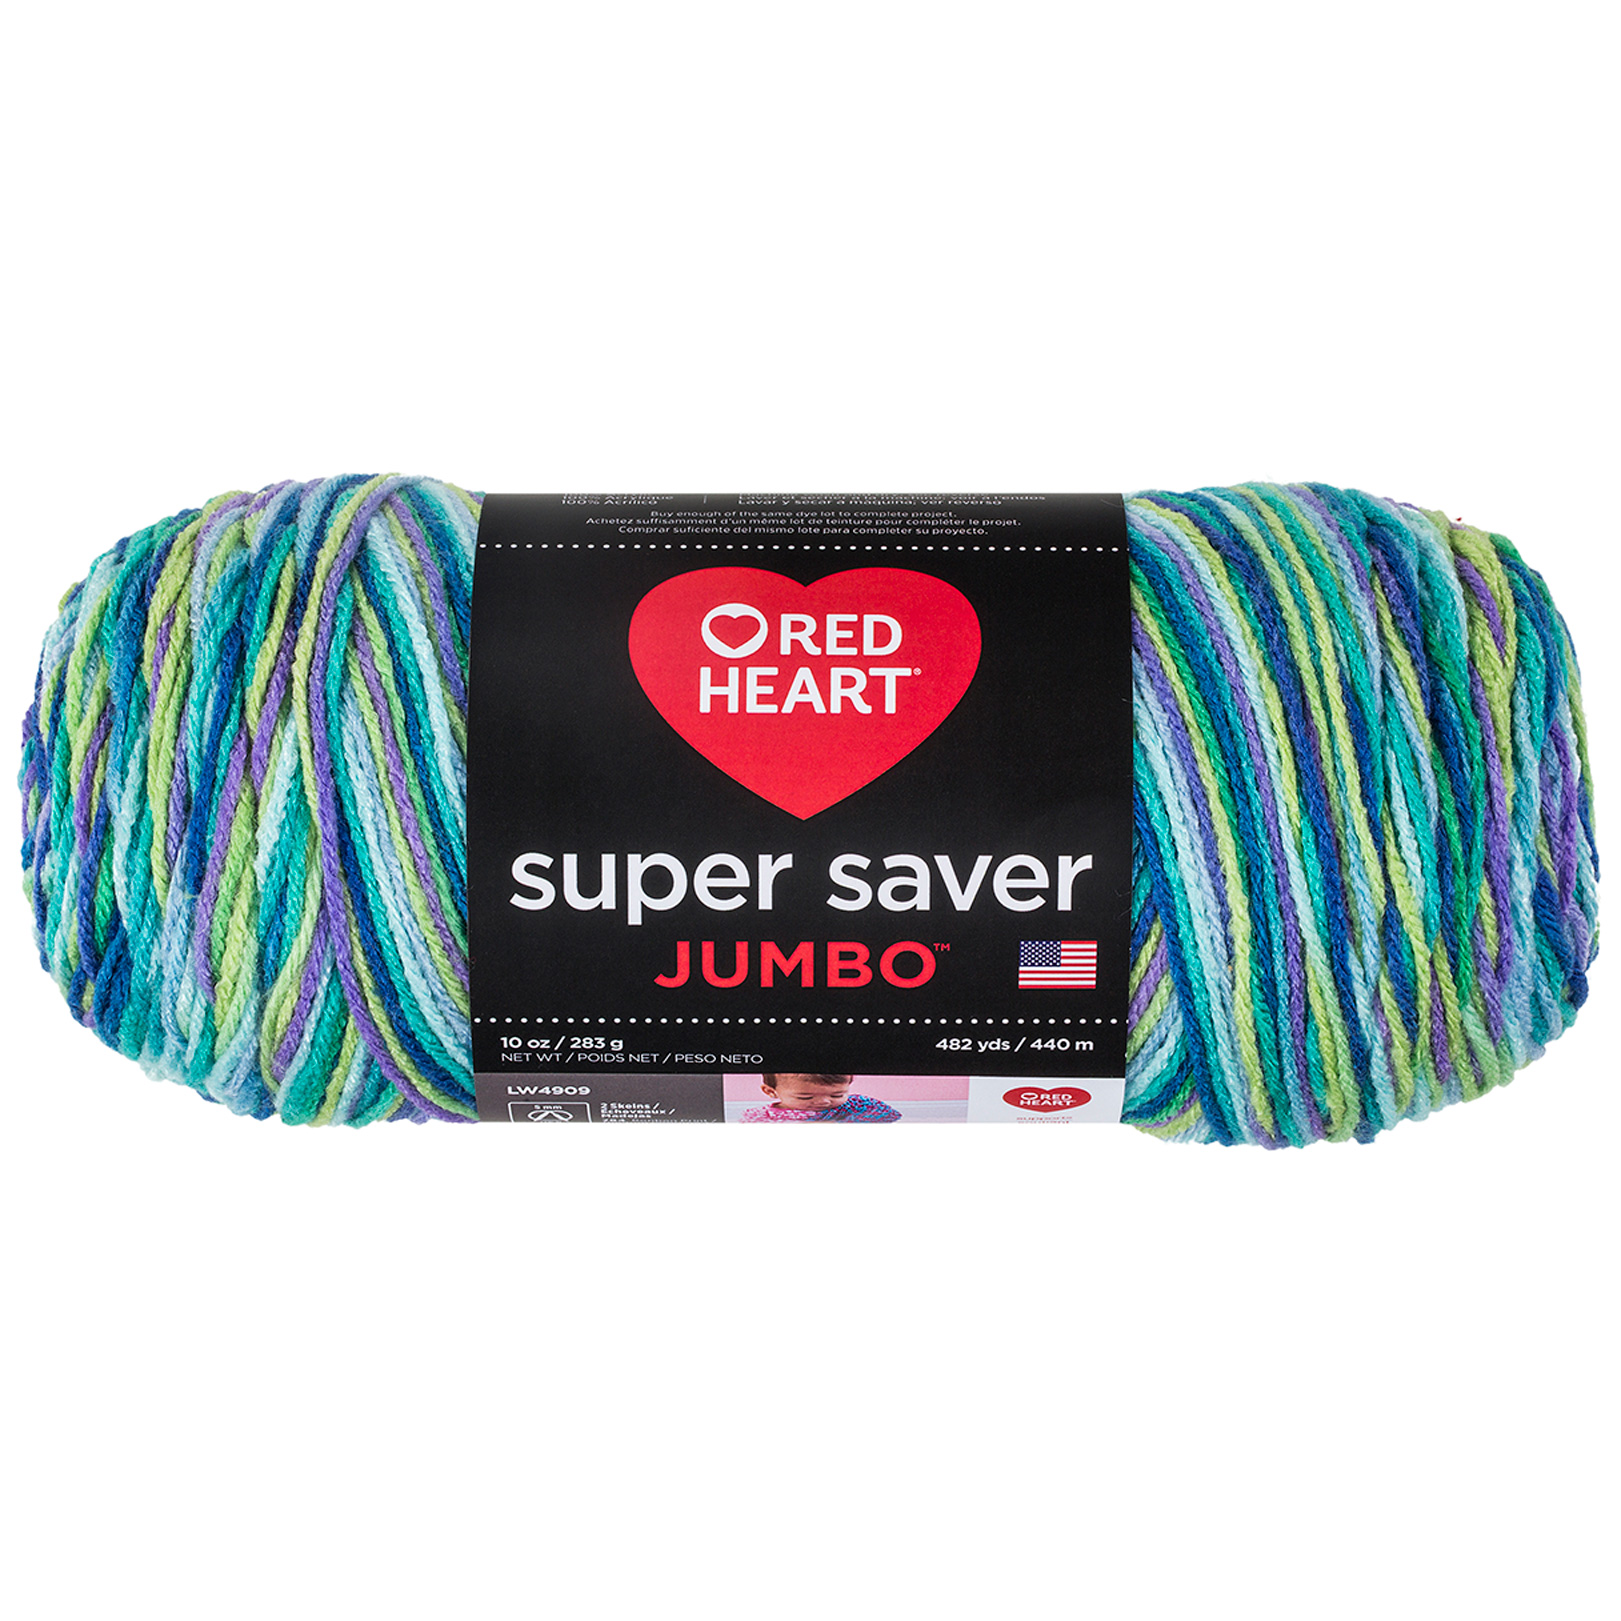 Red Heart Super Saver Jumbo Wildflower by Coats & Clark in USA